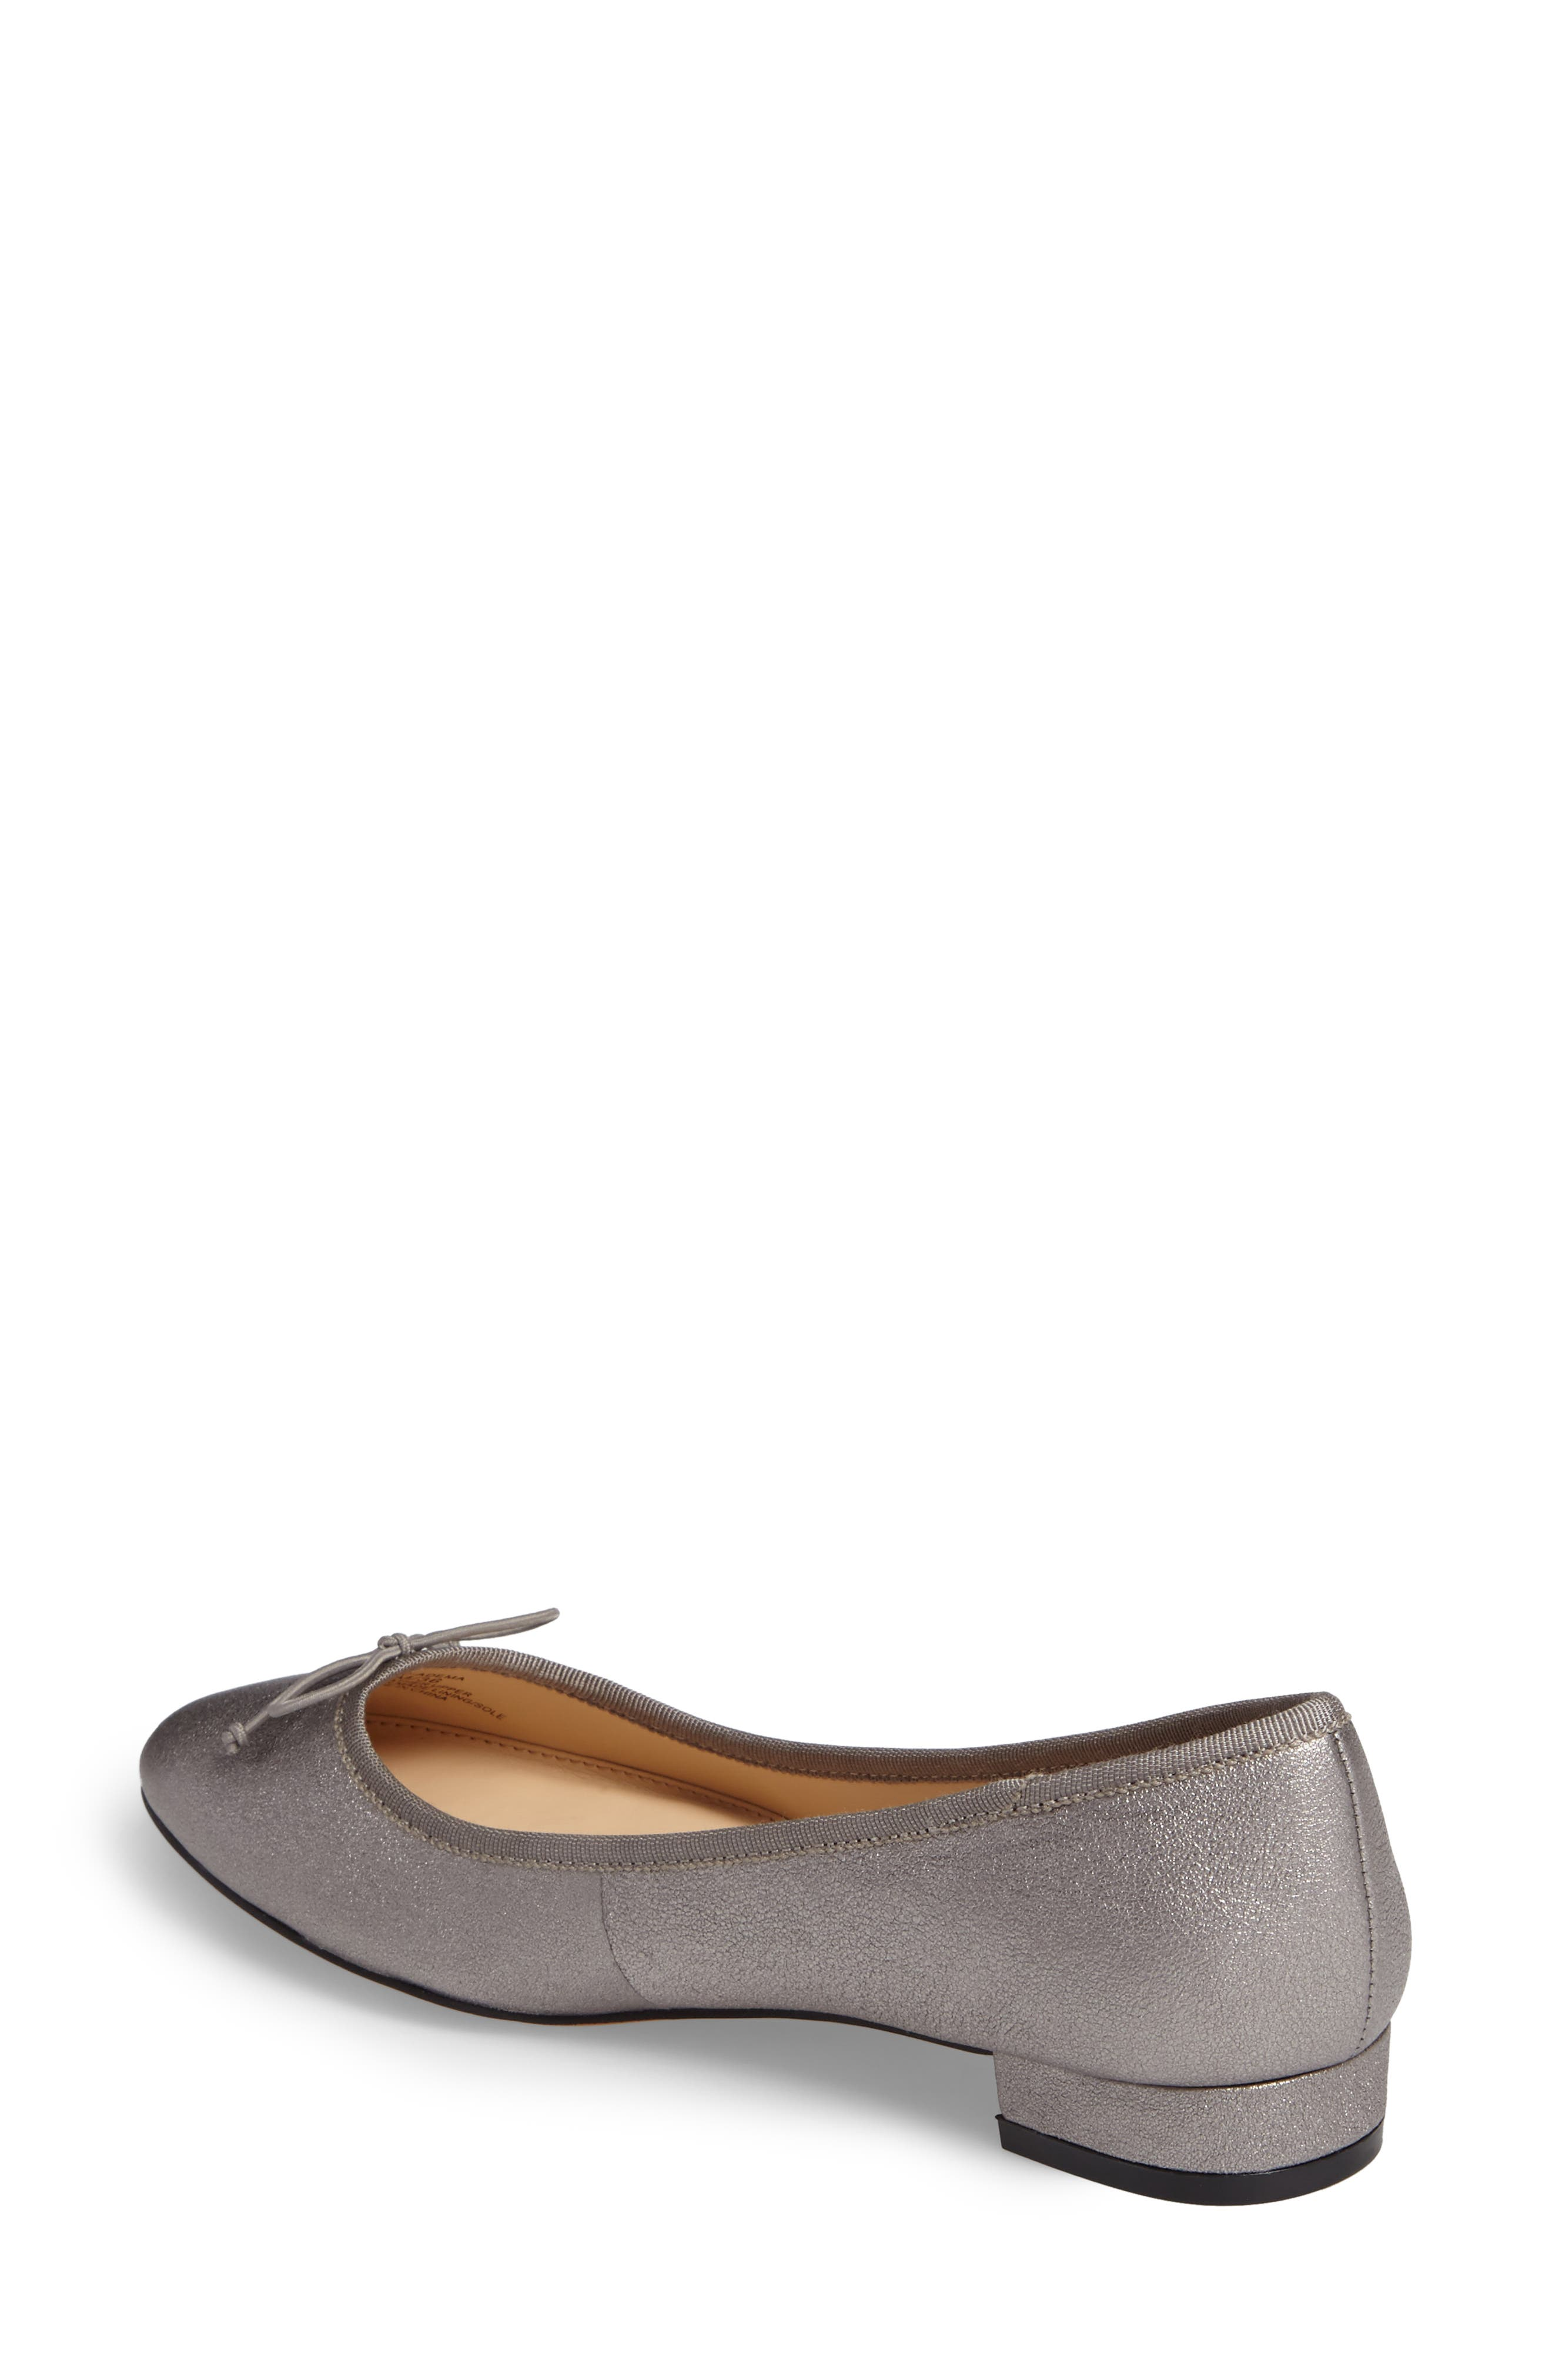 Alternate Image 2  - Vince Camuto Adema Flat (Women)